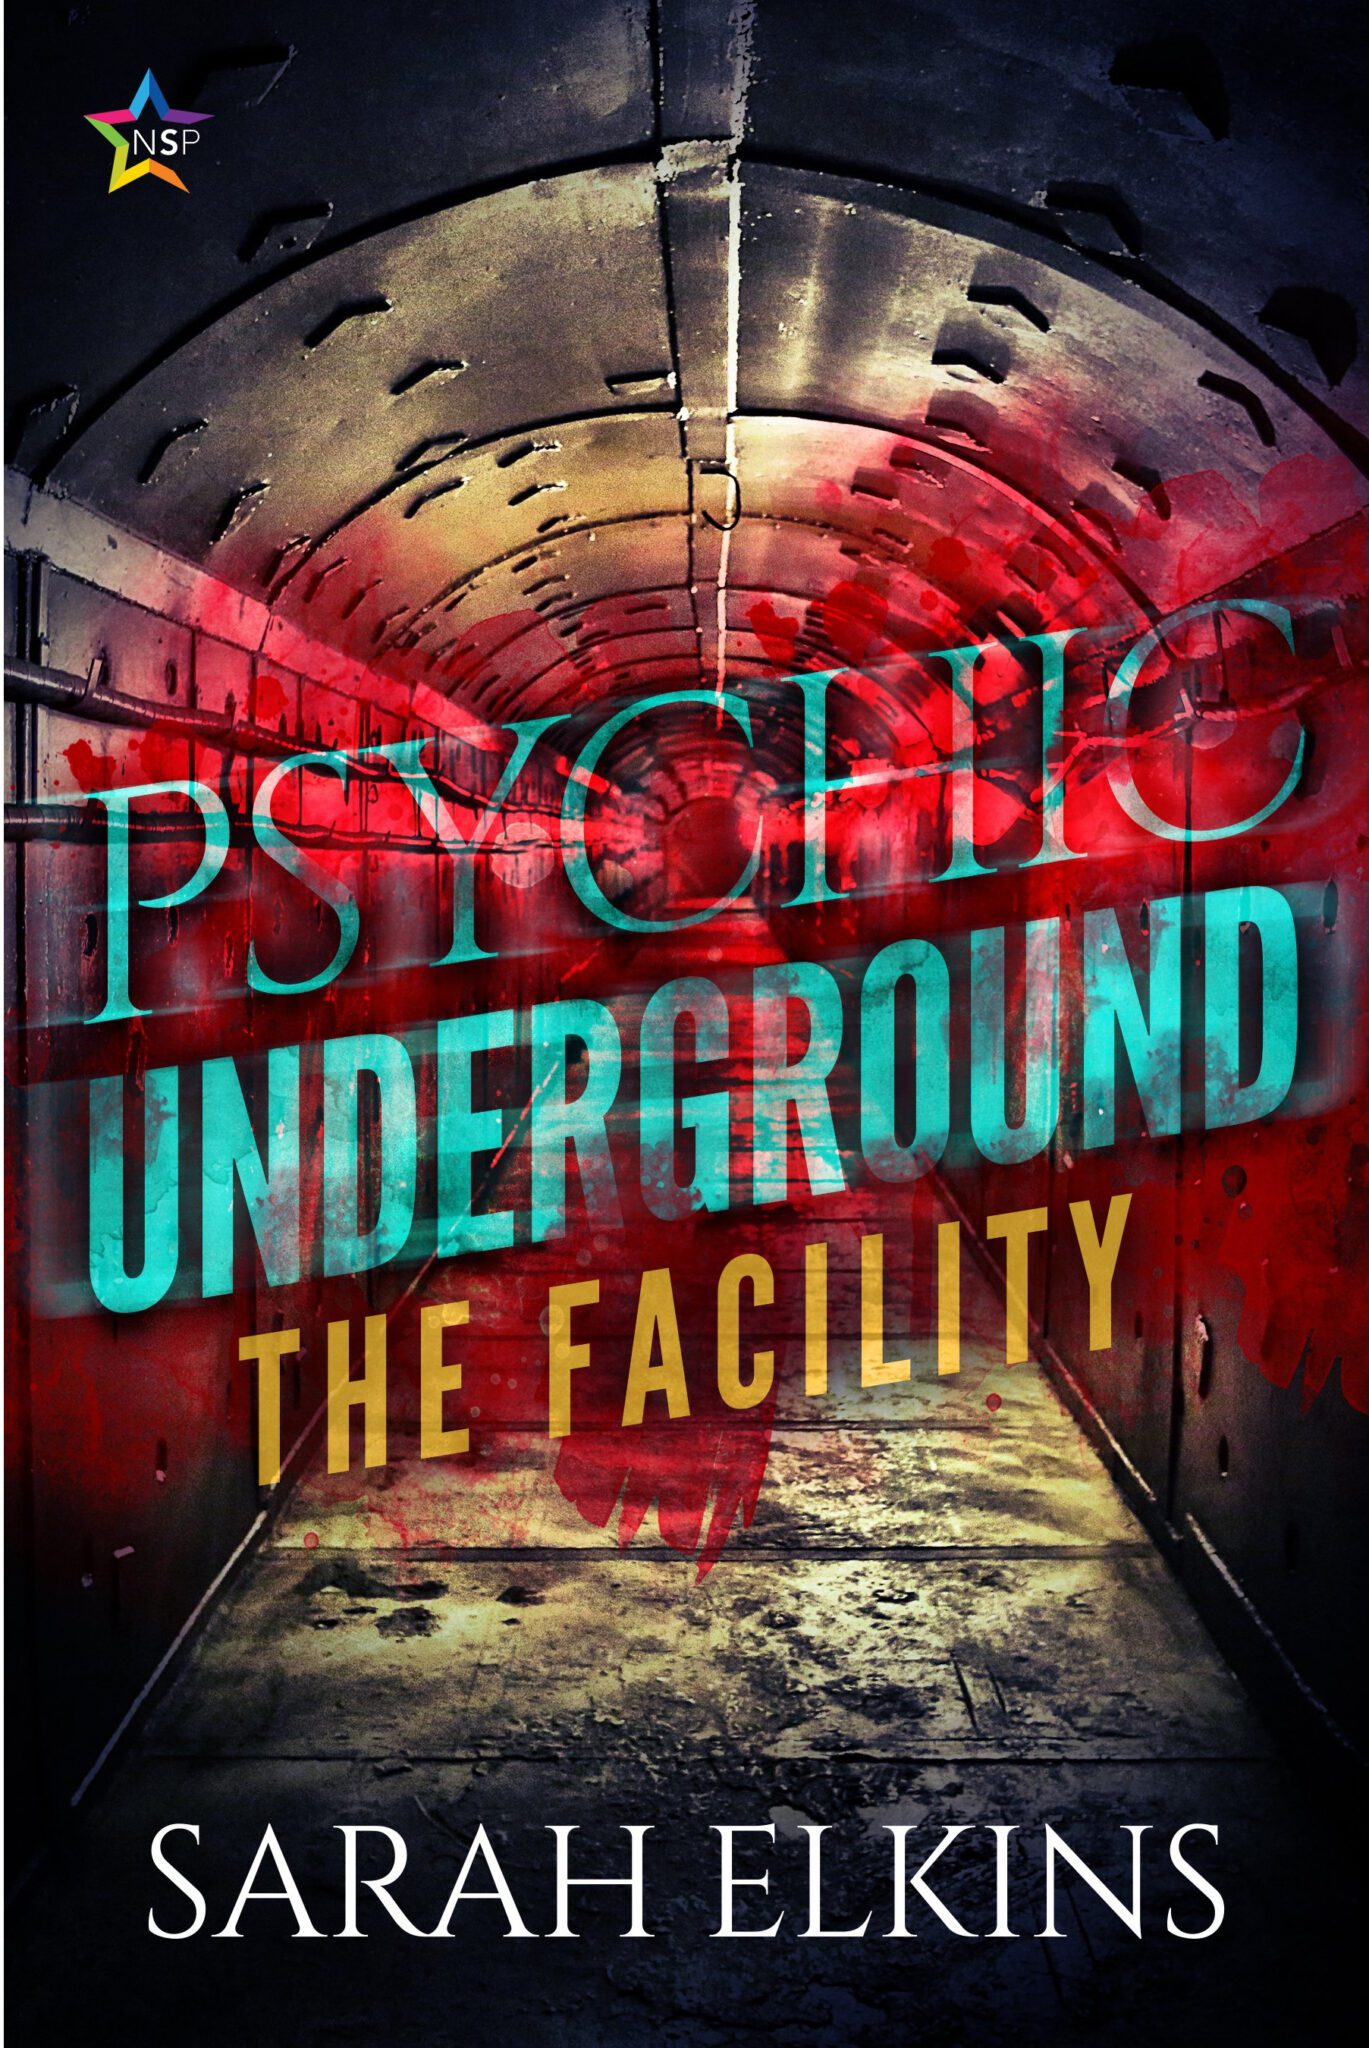 Sarah Elkins: Five Things I Learned Writing Psychic Underground: The Facility